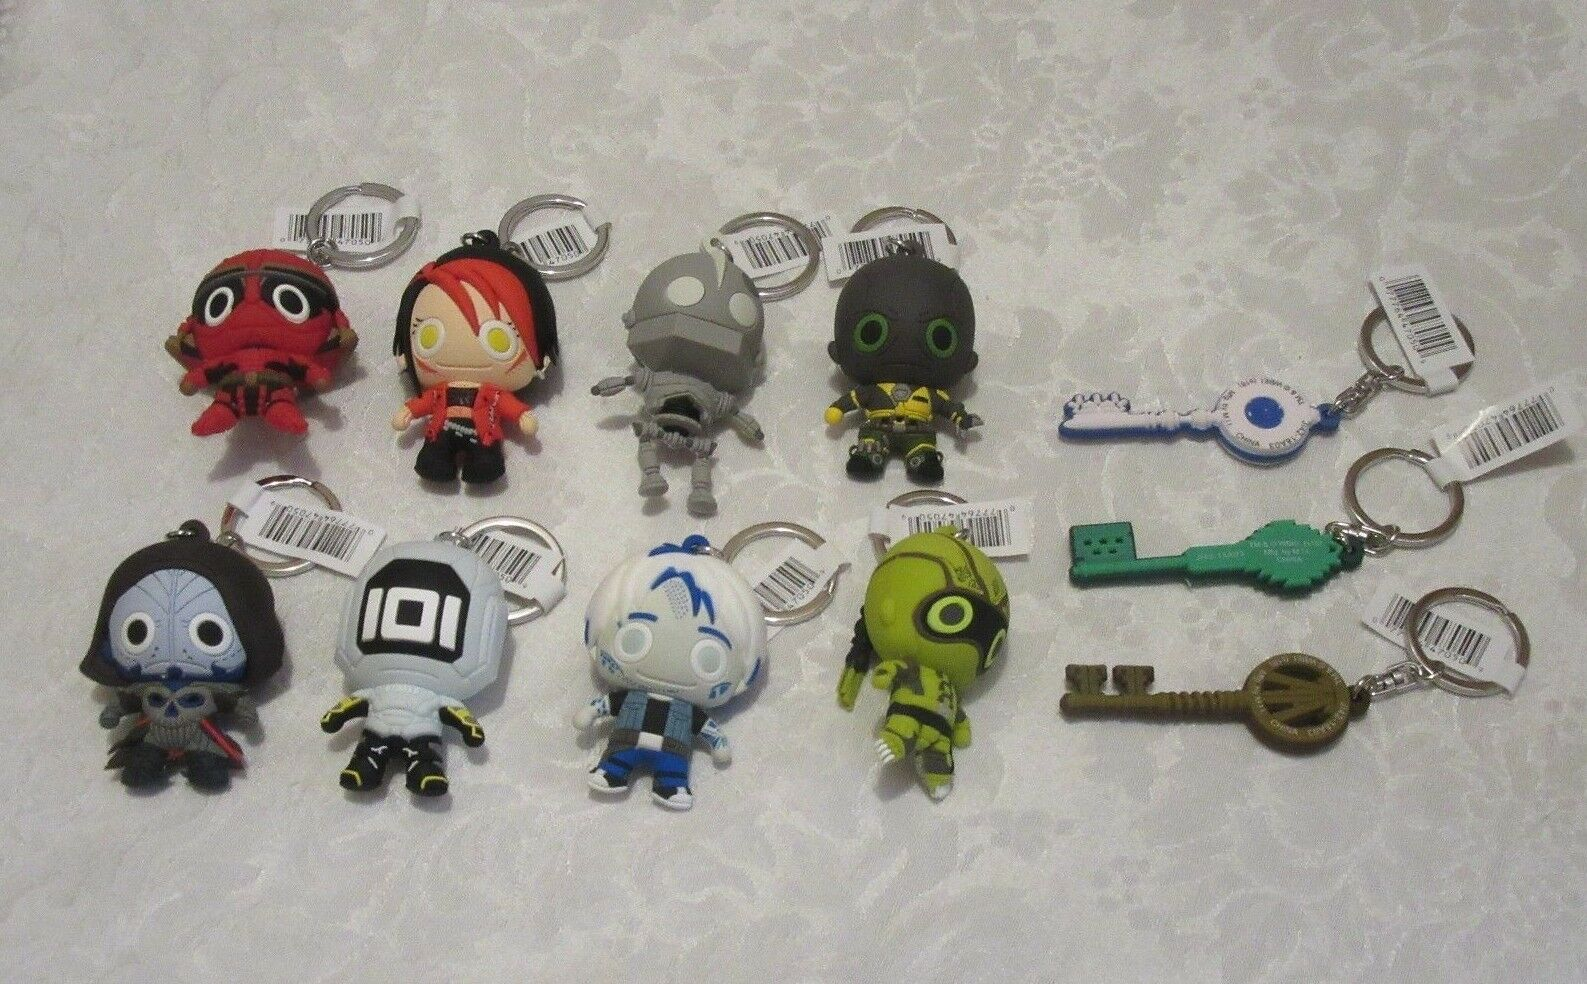 Monogram Figural Ready Player One Lot of 11 A Complete Set with Exclusives